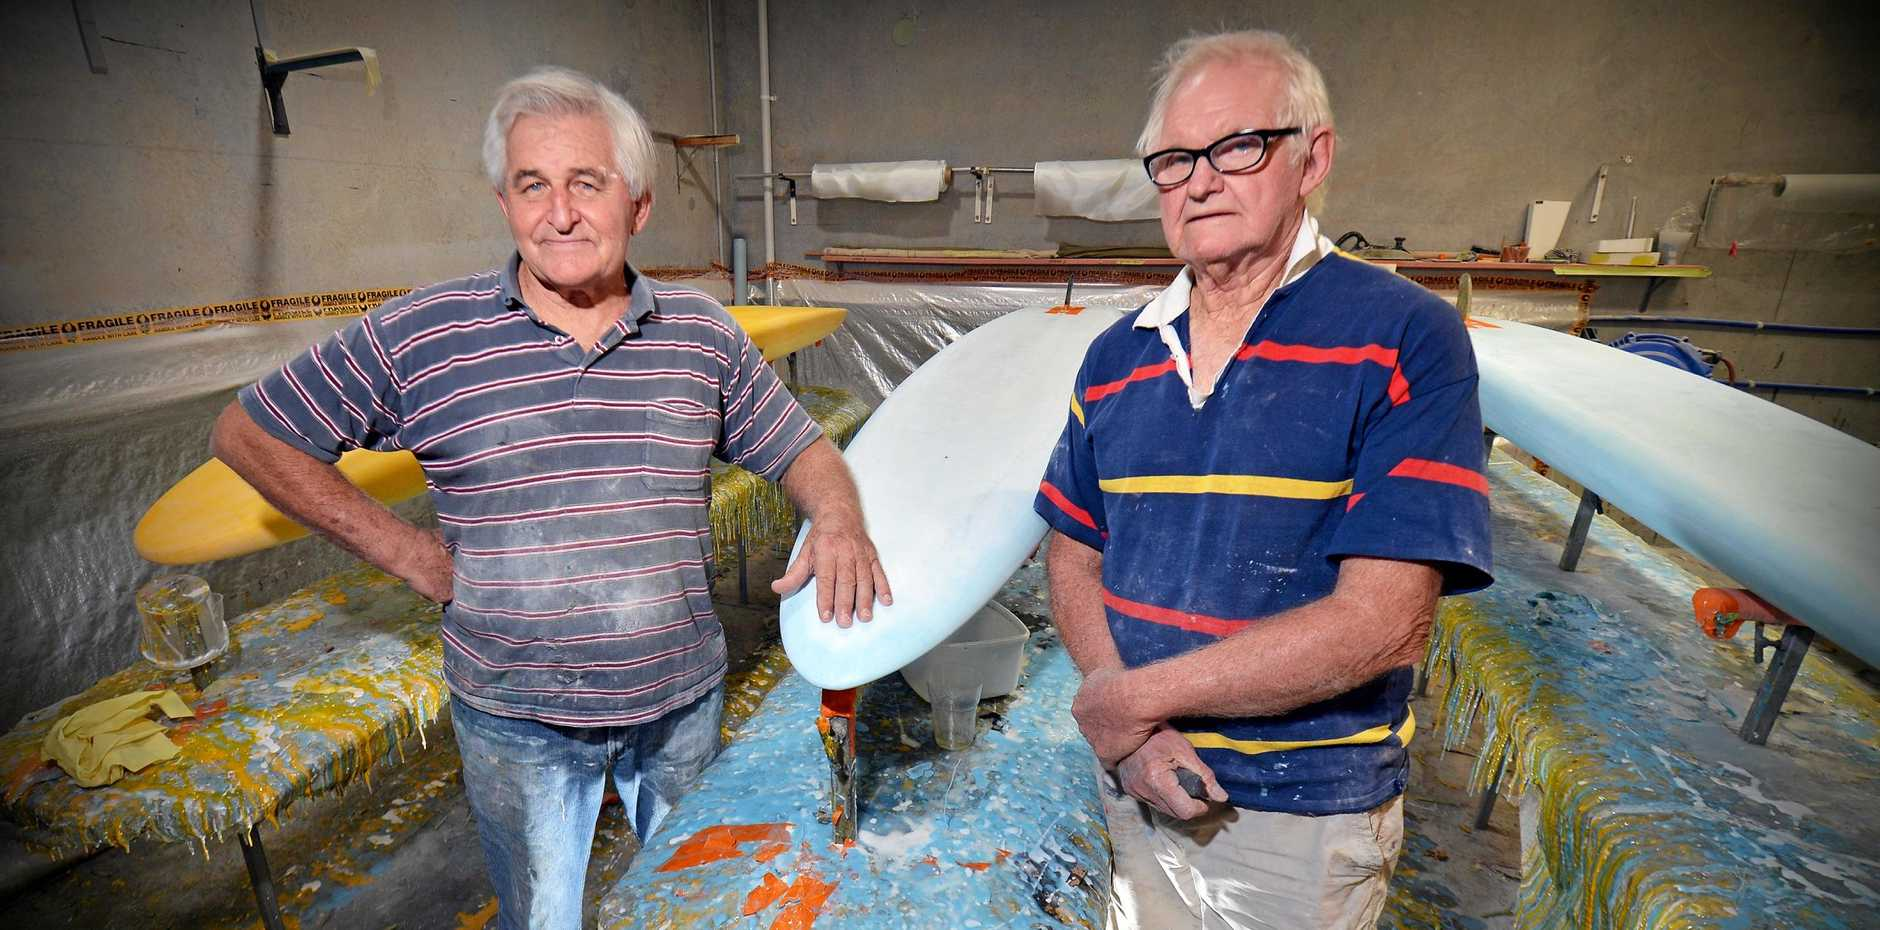 Mick Hopper and Graham Cook are the godfathers of surfboard shaping on the Sunshine Coast having been in the business since the 1960s.